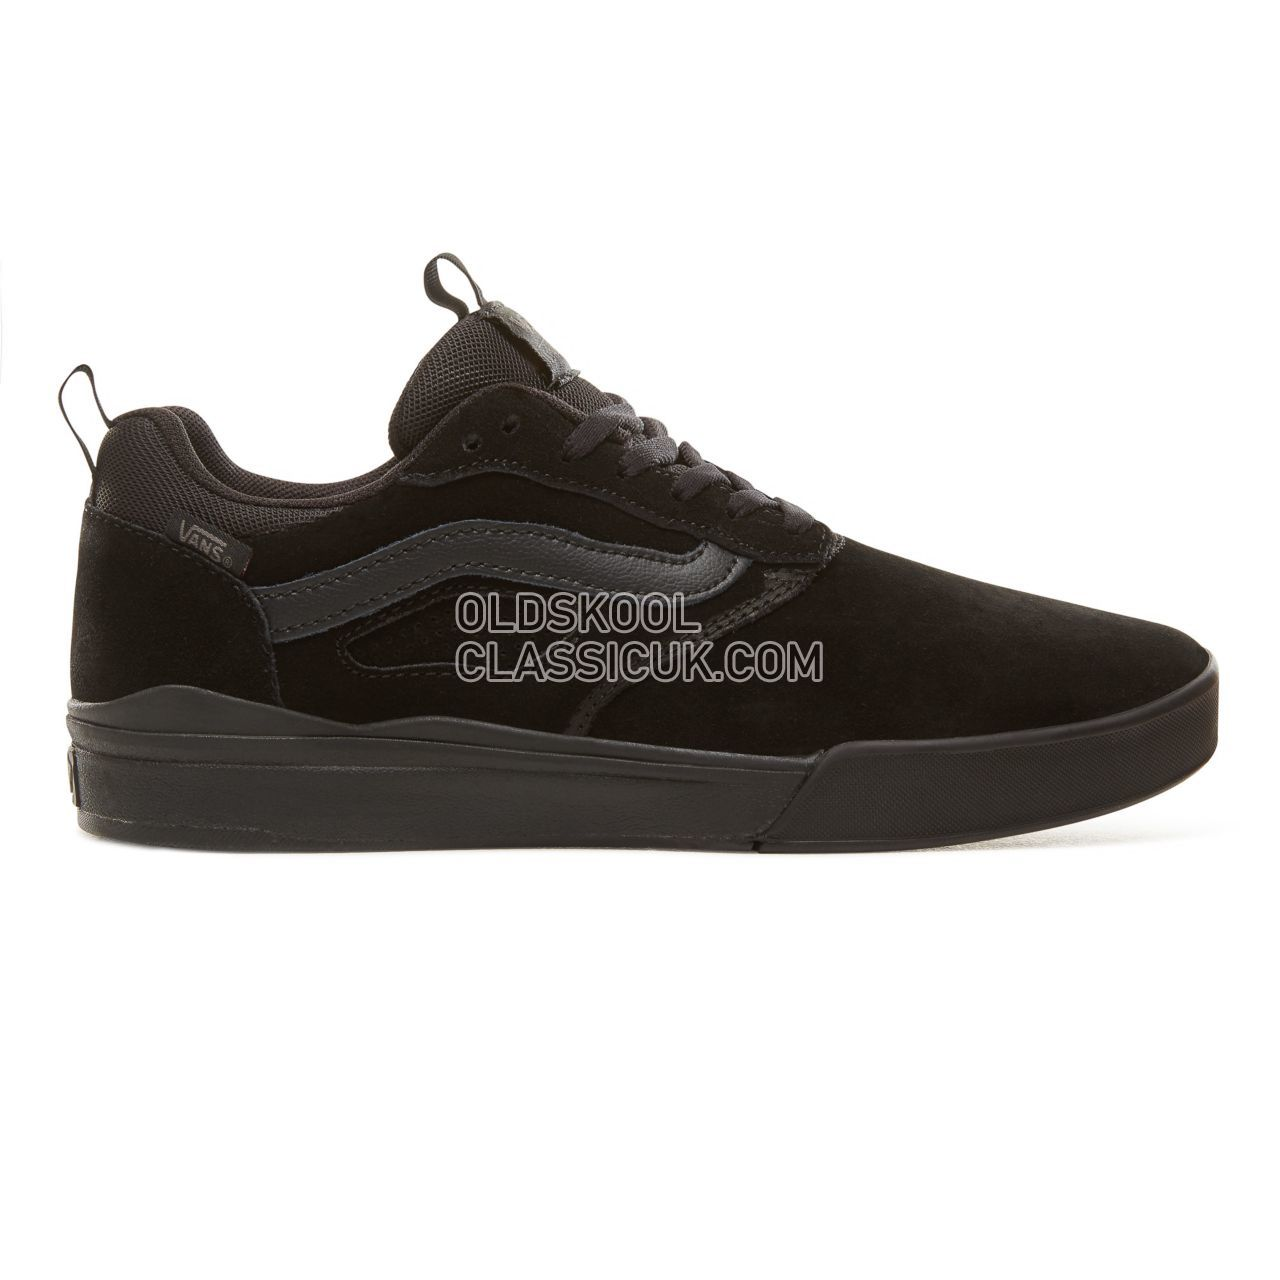 Vans UltraRange Pro Sneakers Mens Black/Black VA3DOSBKA Shoes